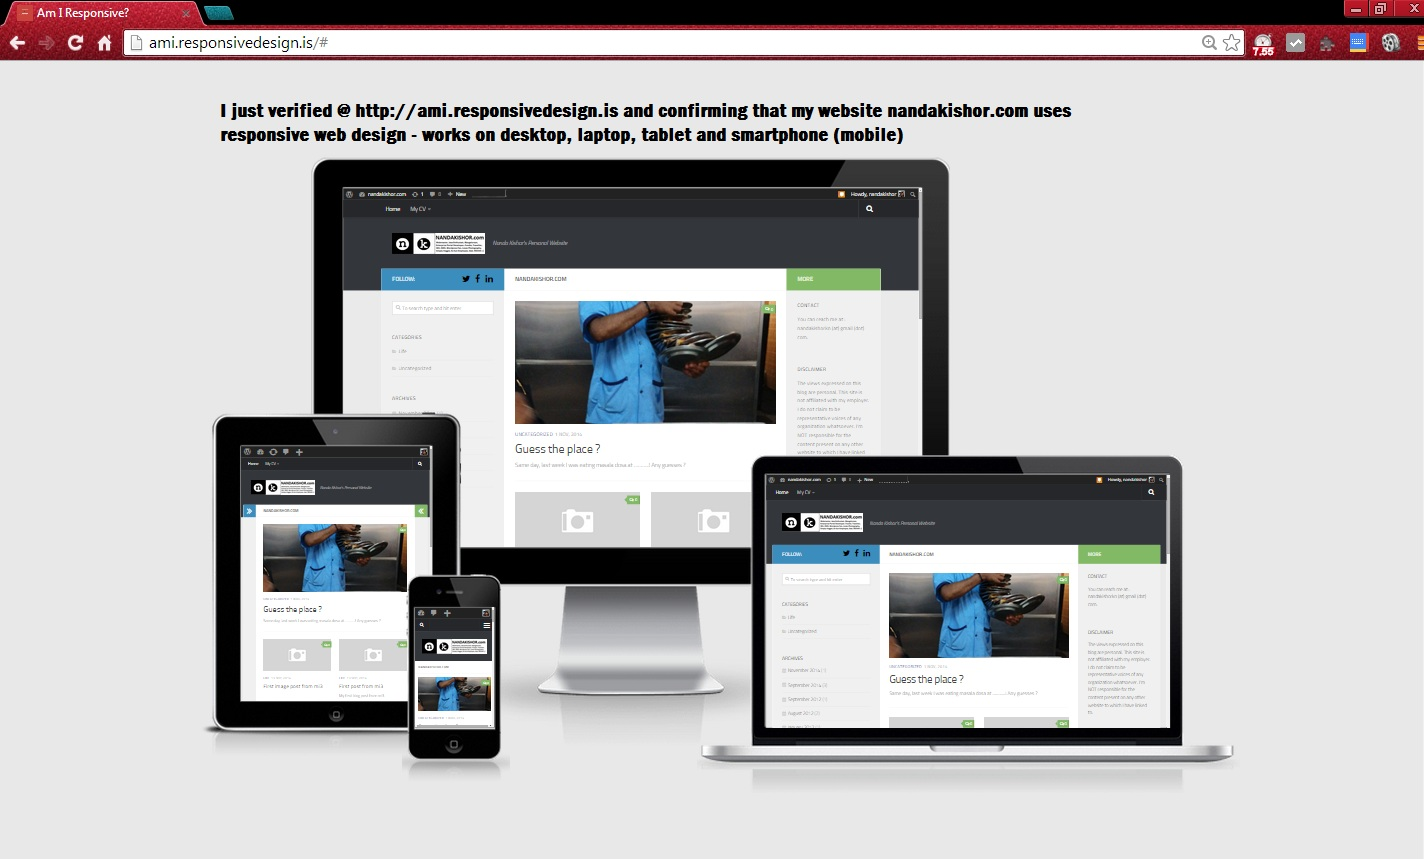 My website uses responsive design now